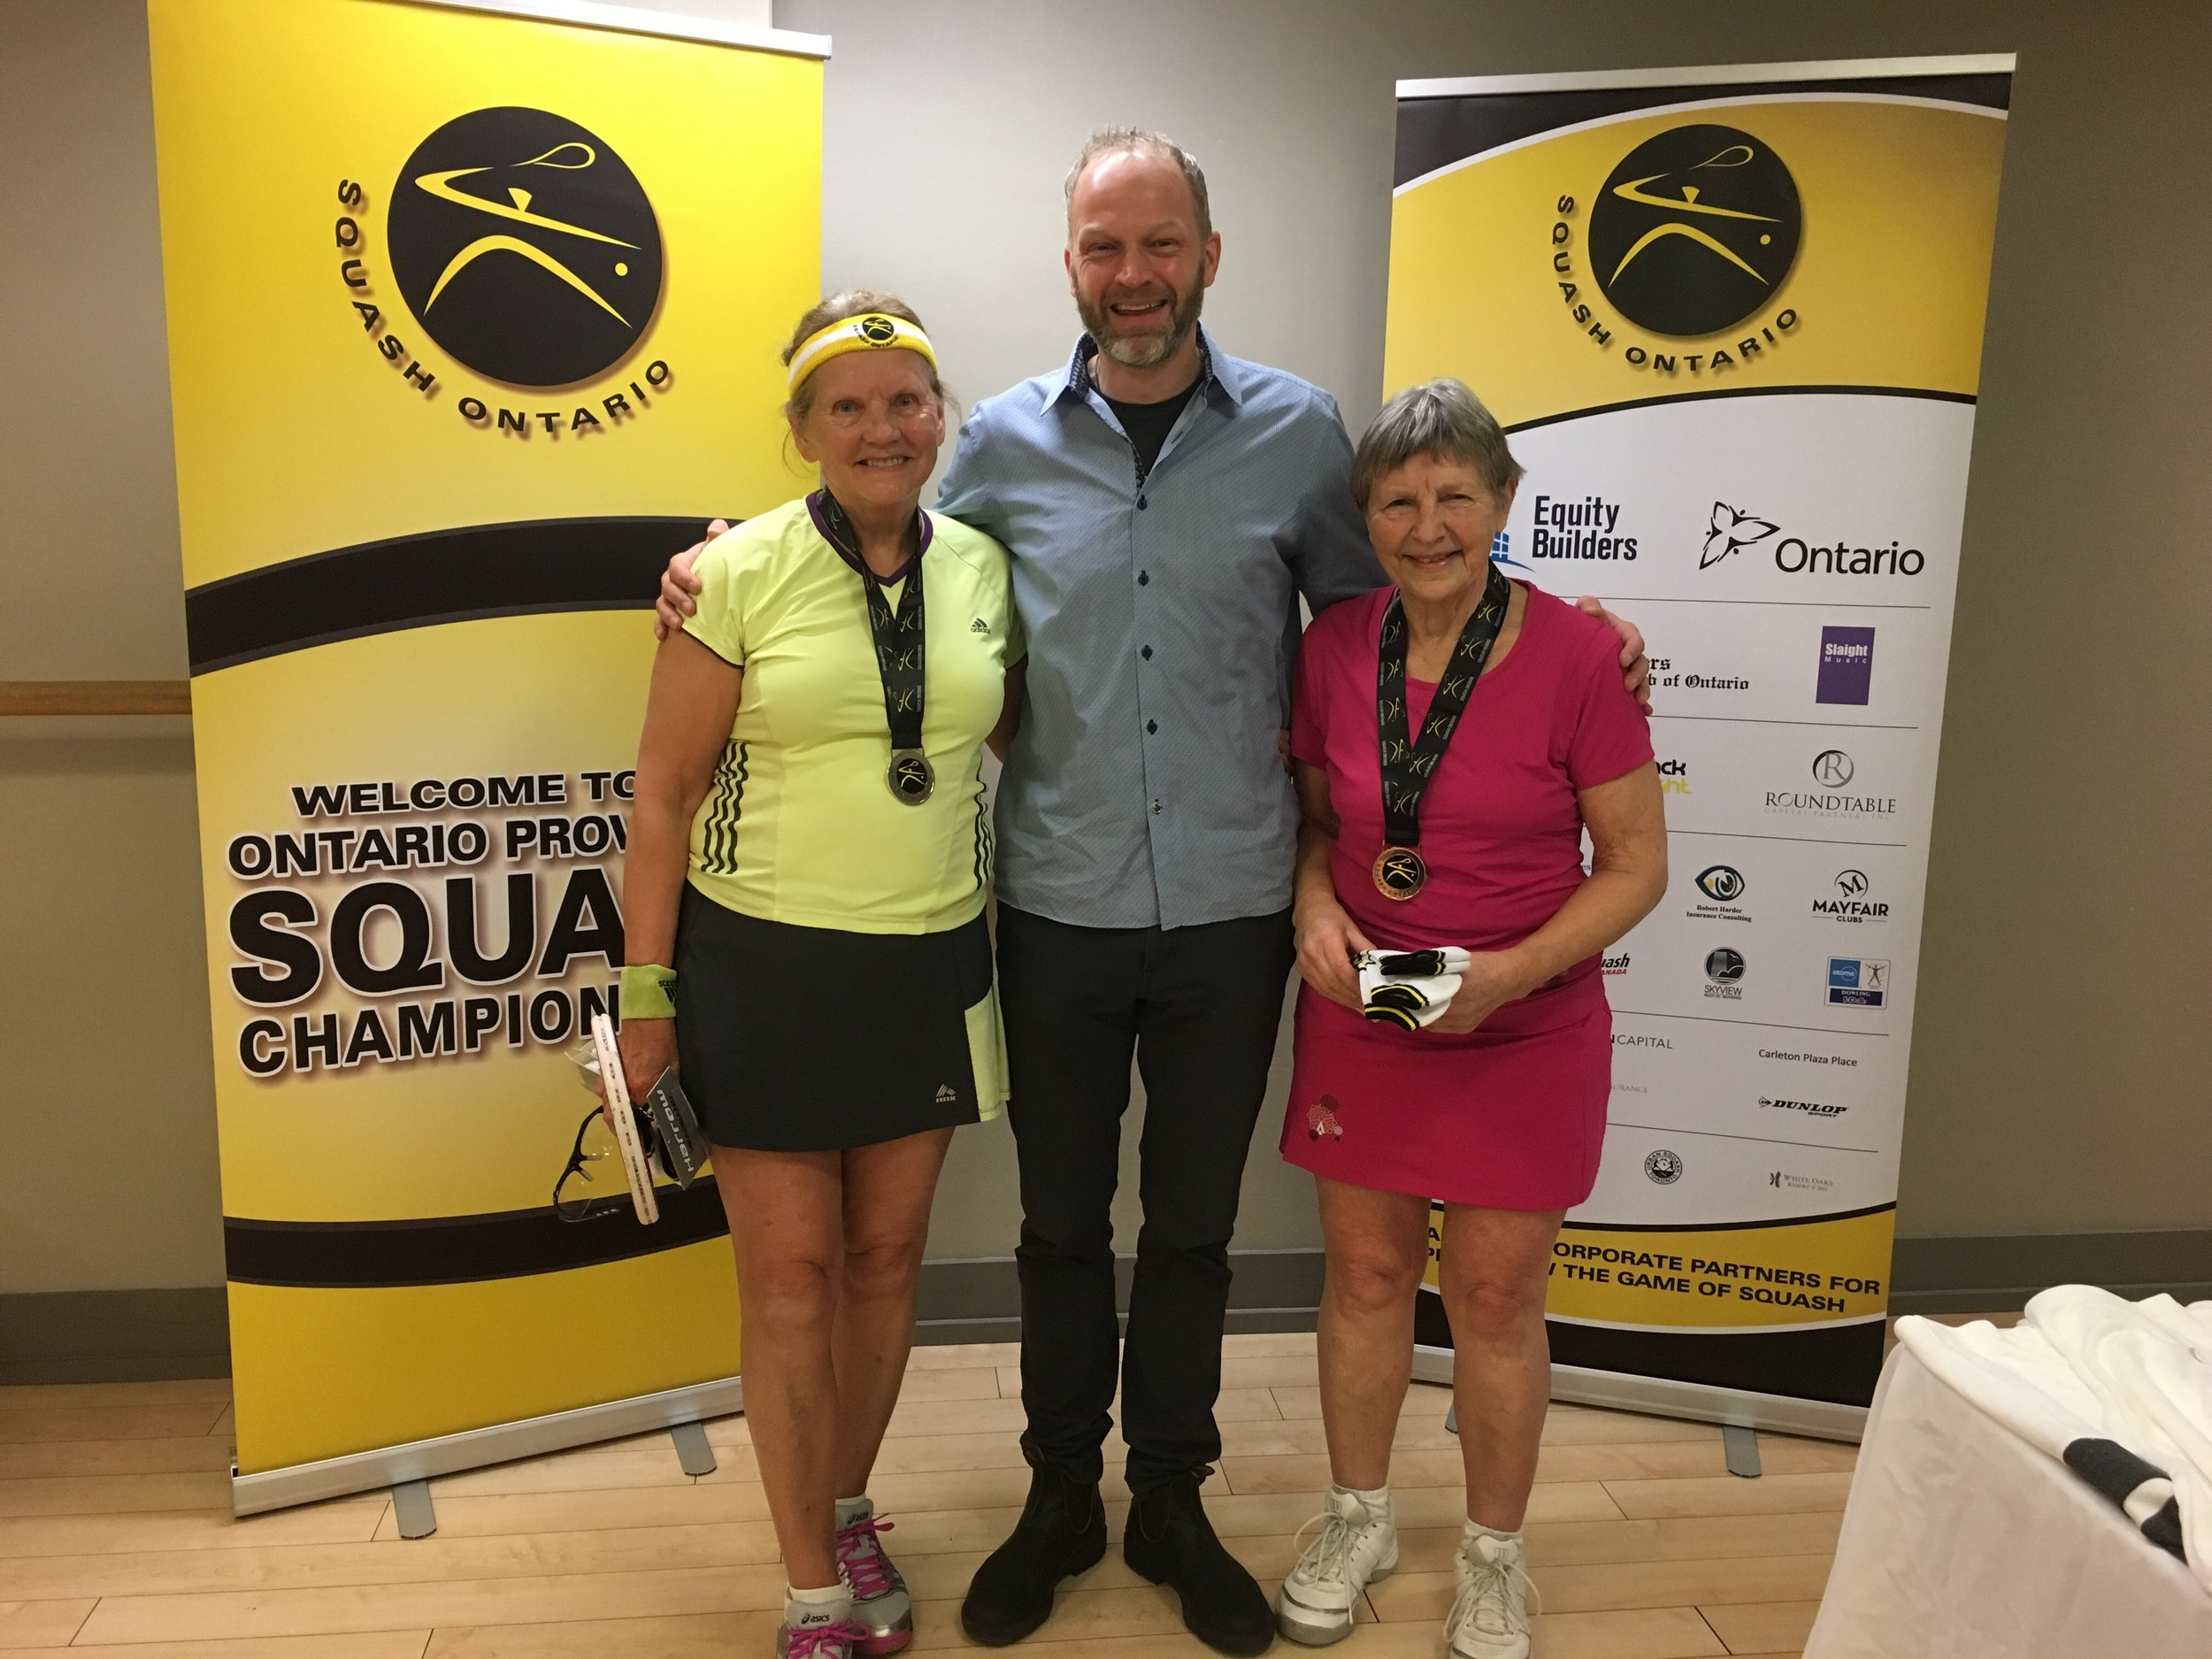 L-R: Christine Kogon, Squash Ontario's President Bruce Marrison, Penny Glover